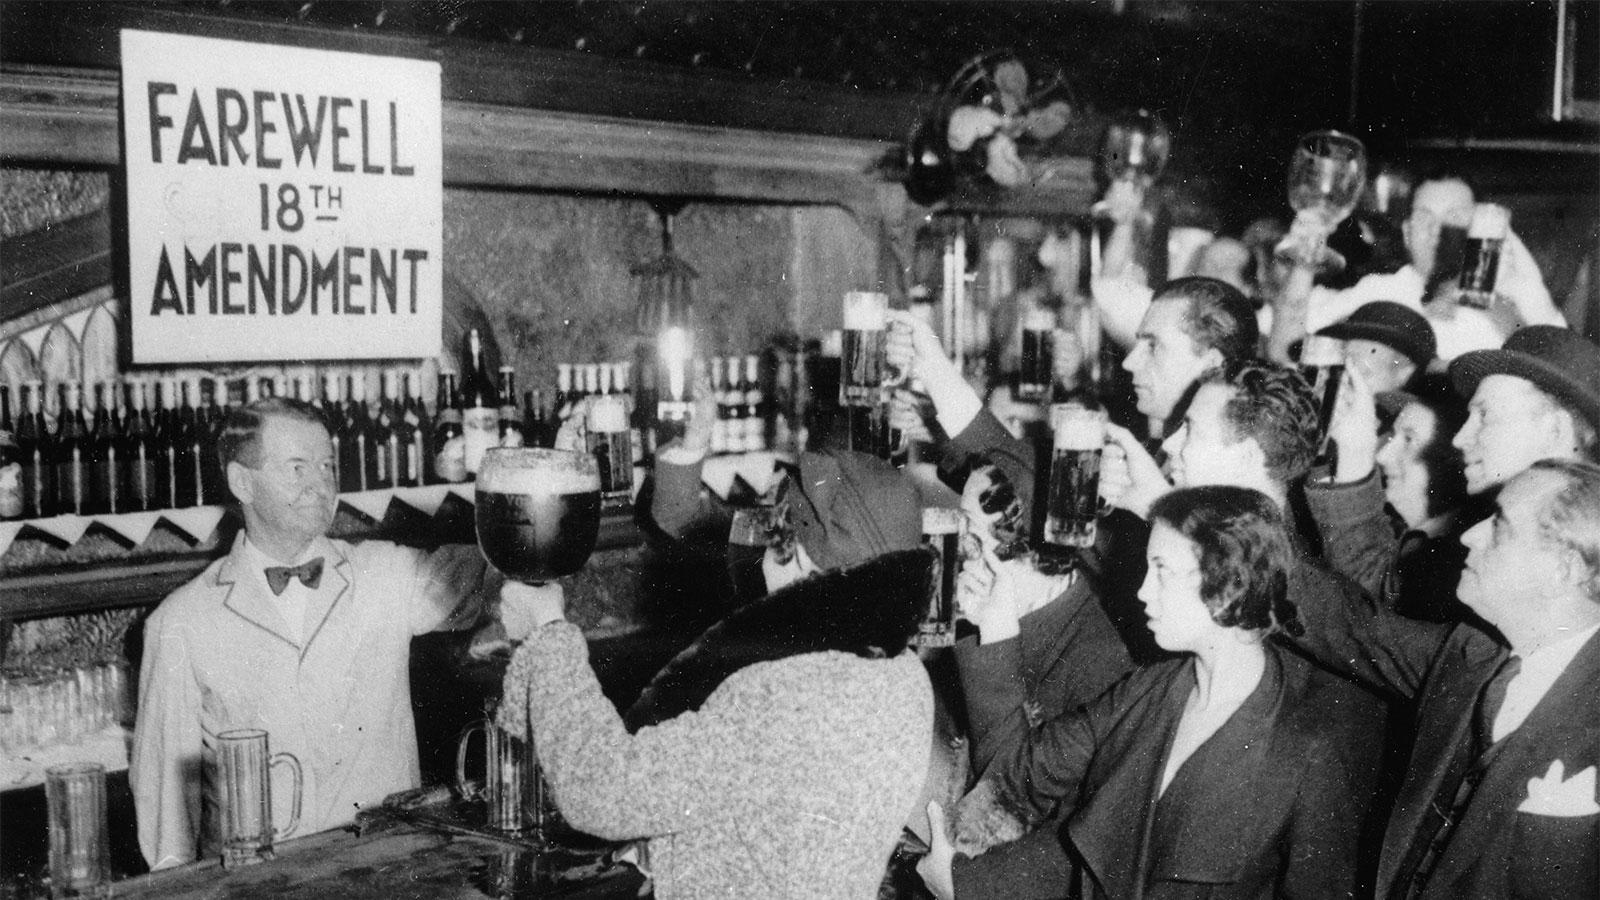 New Yorkers celebrate the end of Prohibition in 1933 with appropriately sized beverages.